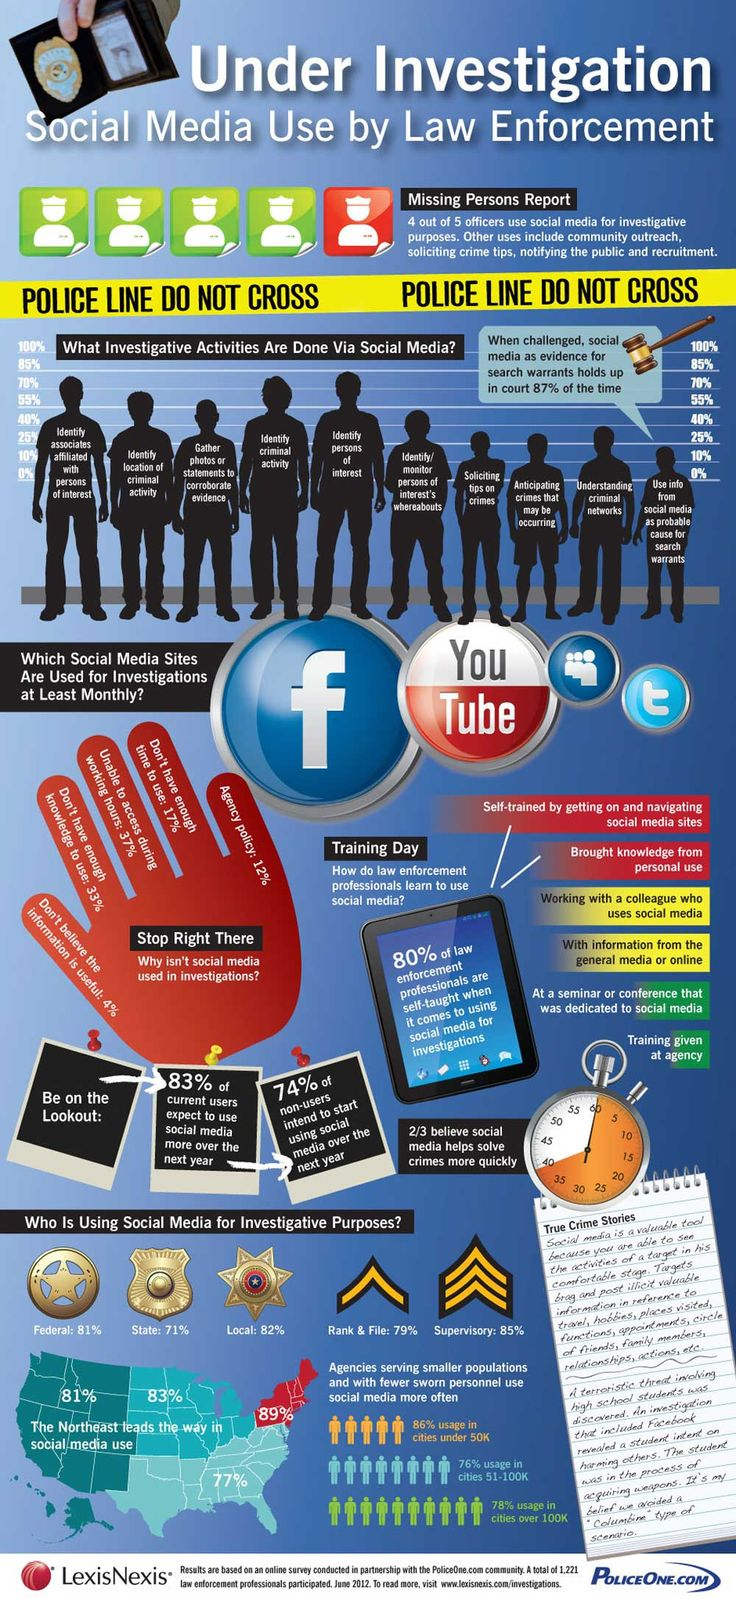 Under Investigation: Social Media Use by Law Enforcement [Infographic]